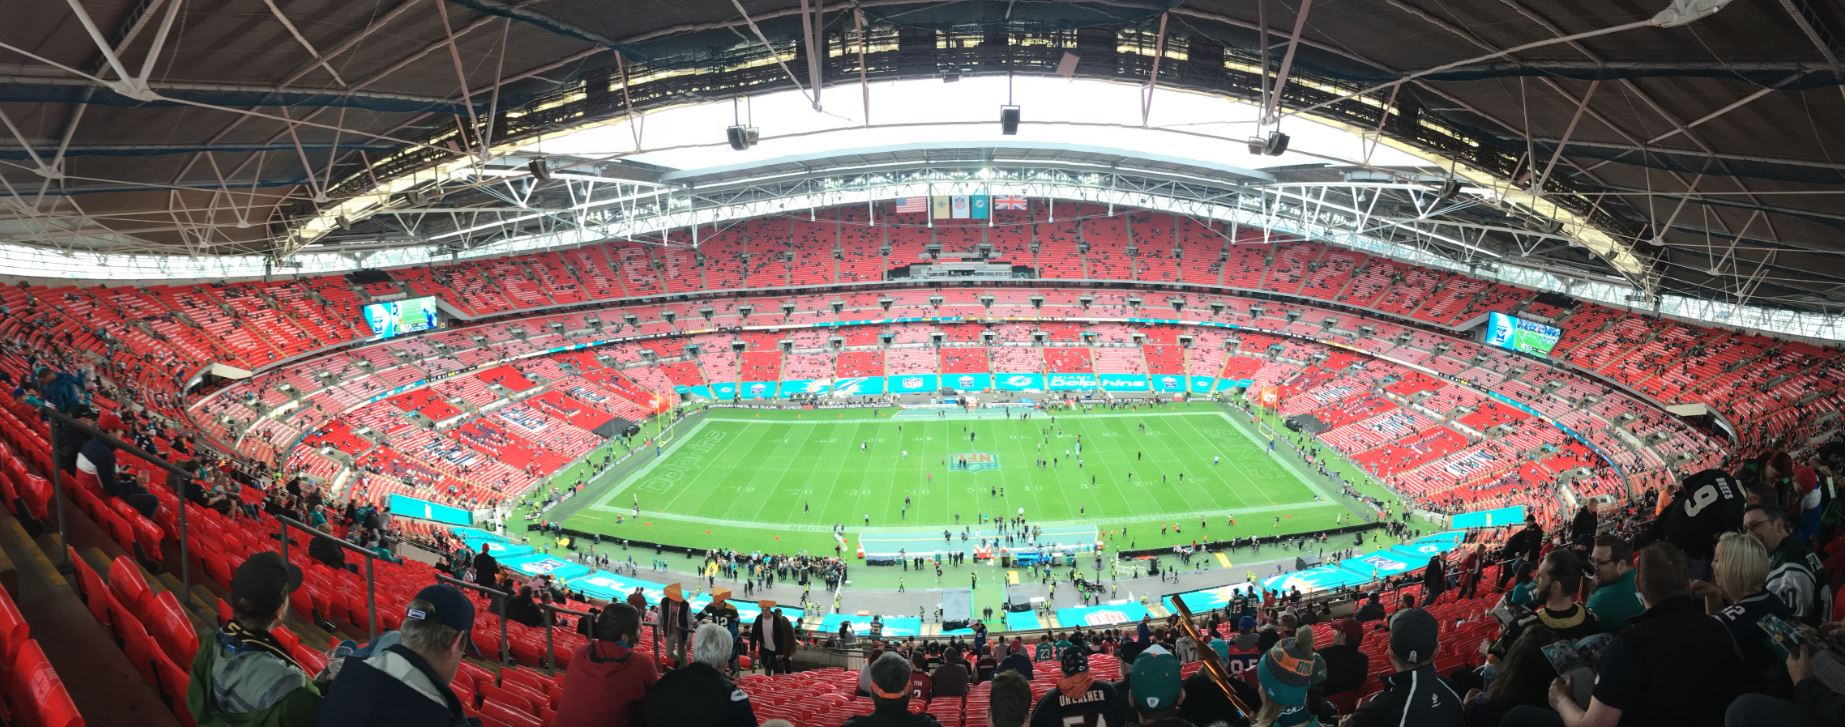 The NFL at Wembley